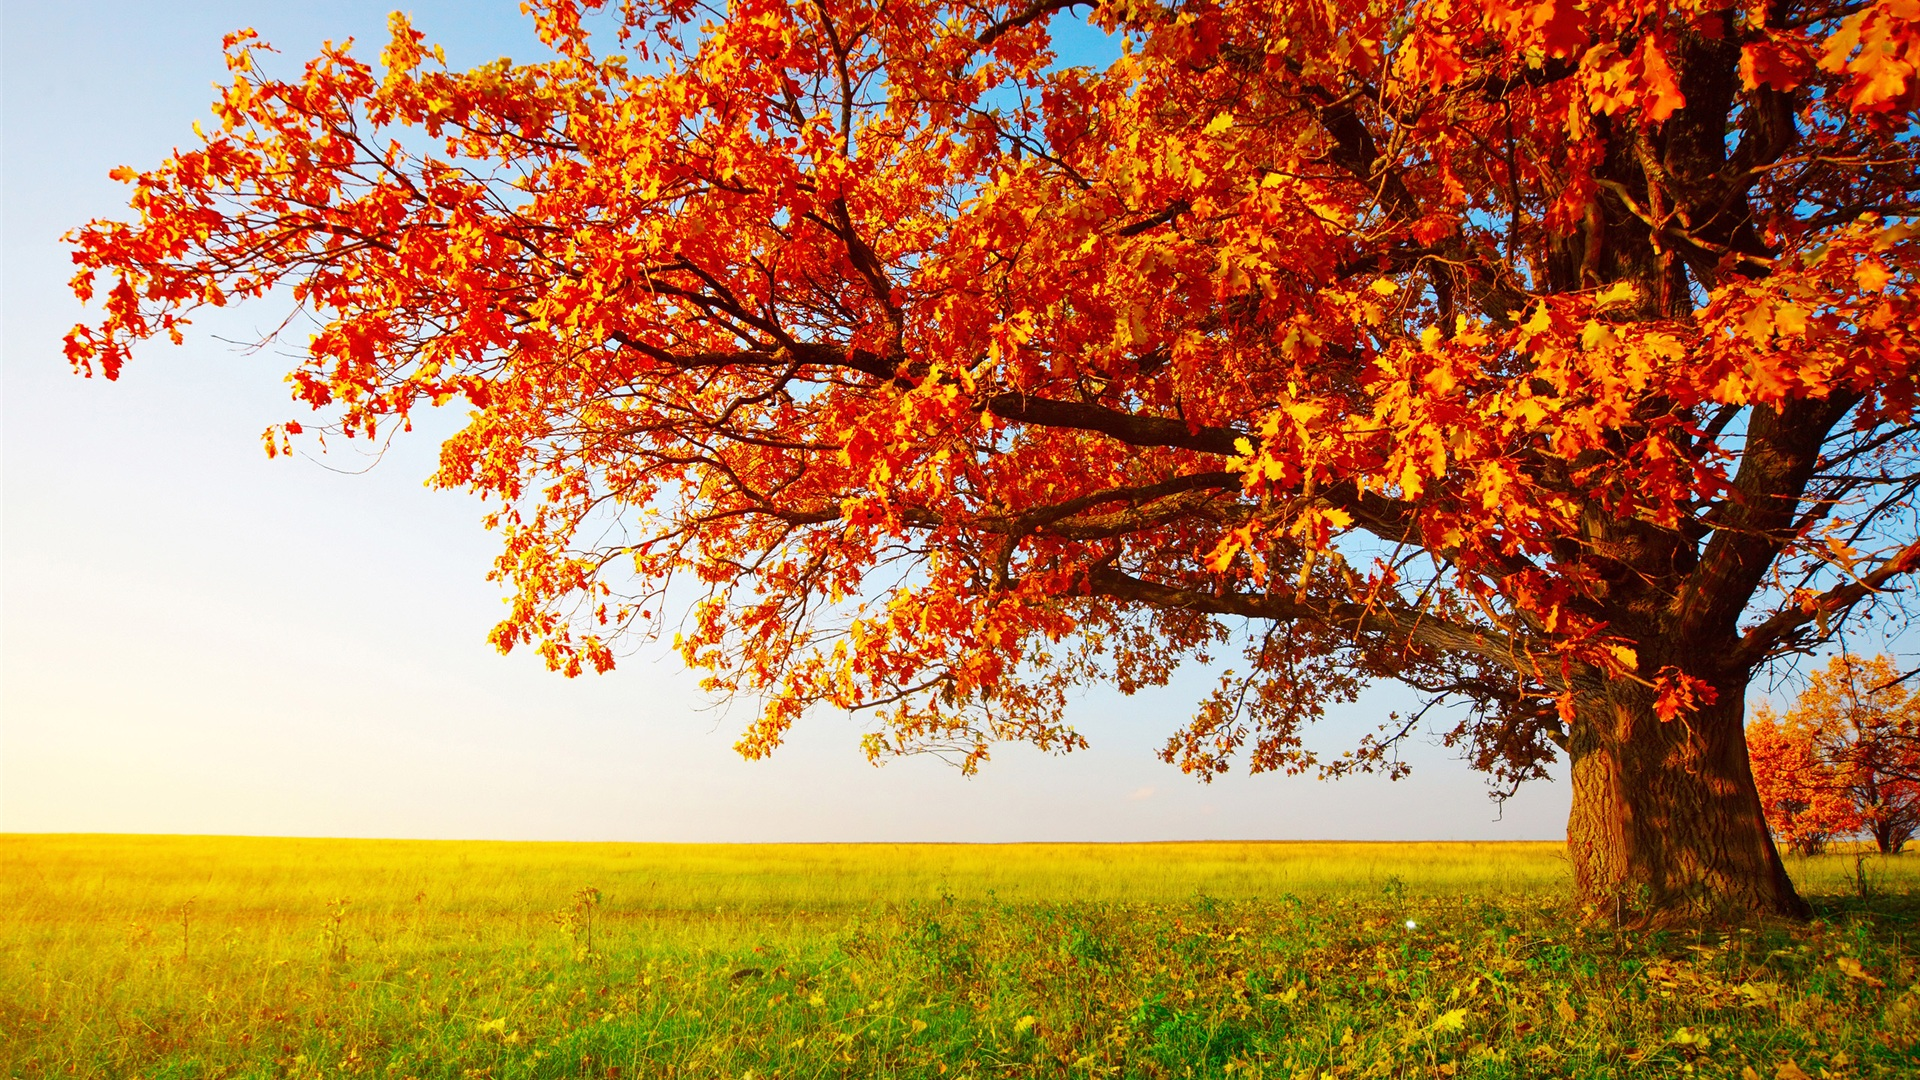 40 Autumn Wallpaper Backgrounds For